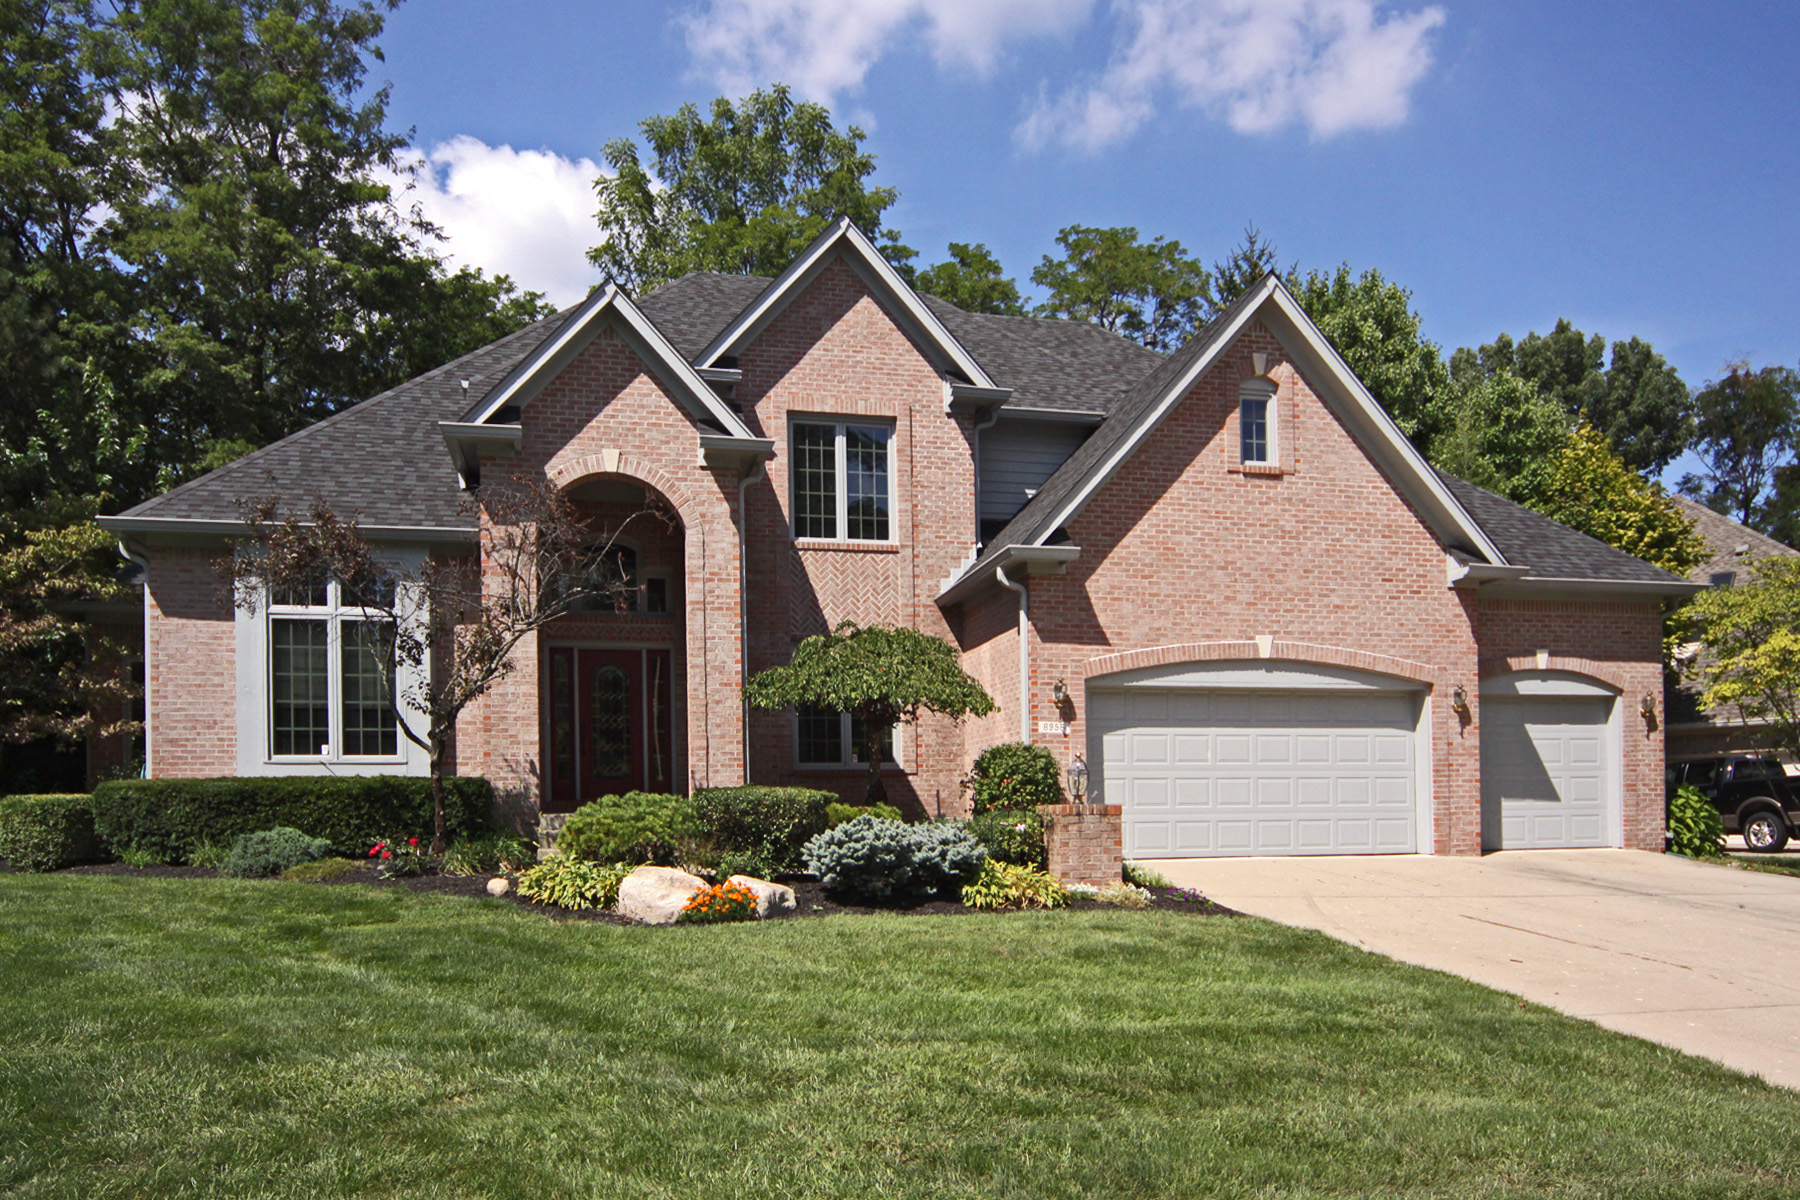 Sold! Fantastic Geist home!